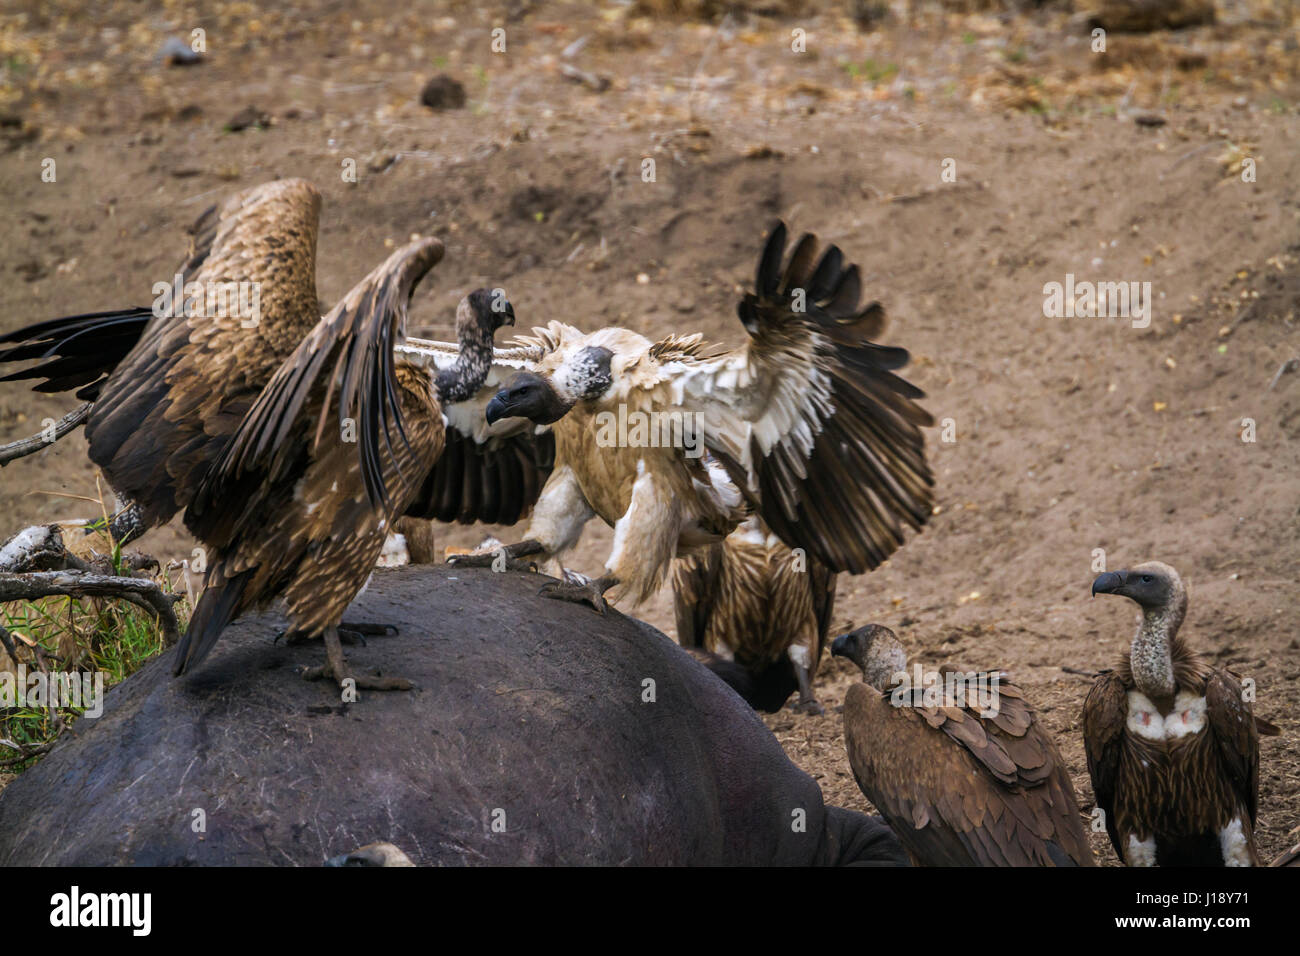 White-backed vulture in Kruger national park, South Africa ; Specie Gyps africanus family of Accipitridae - Stock Image